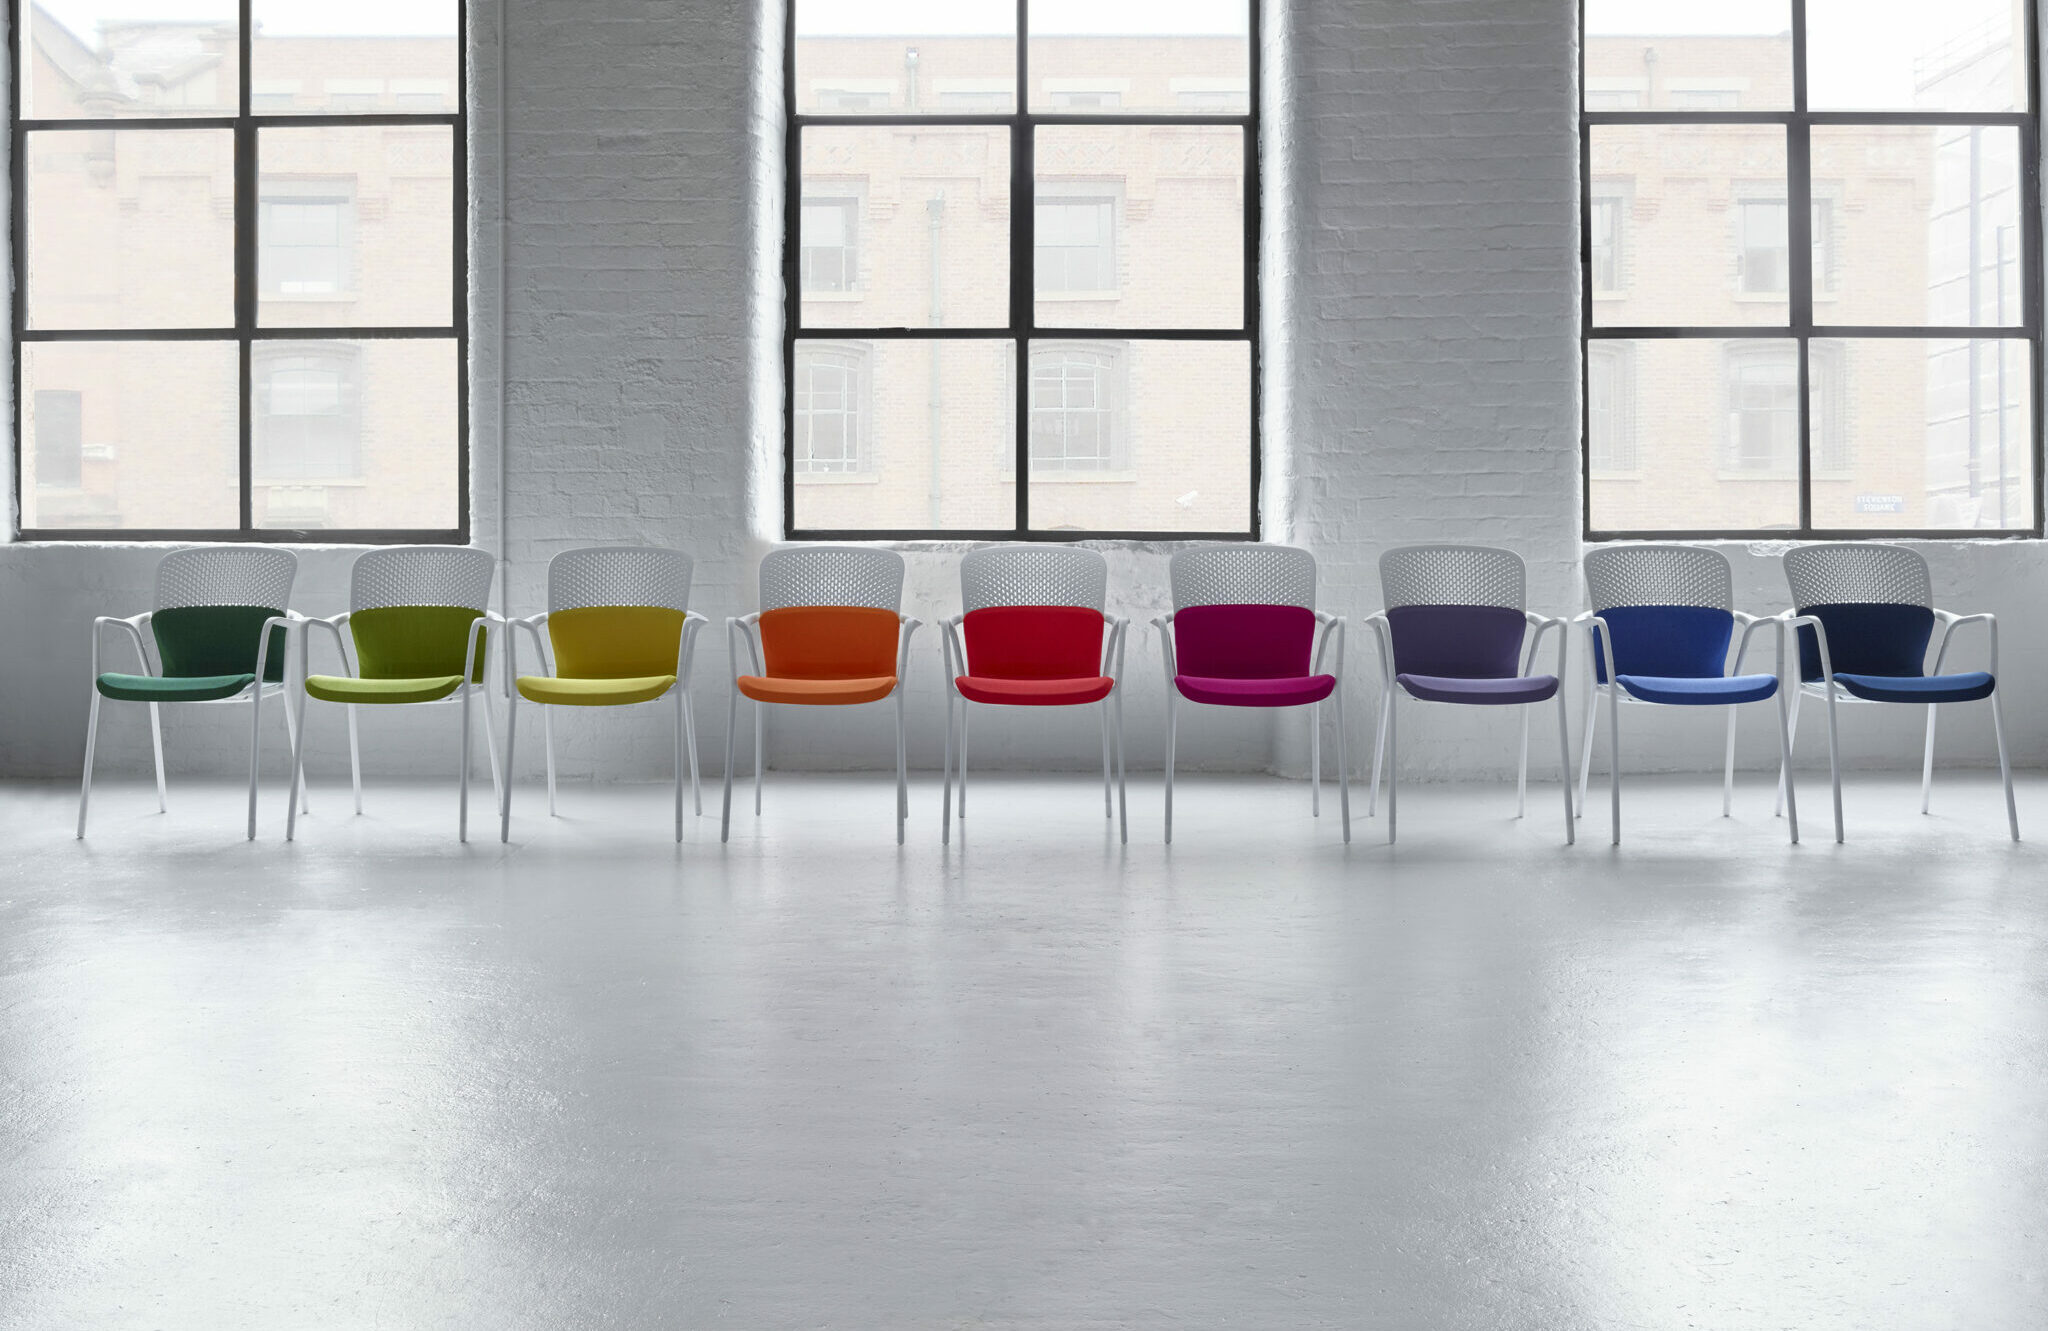 Herman Miller kantoormeubelen Den Haag keyn chair group stoel Heering Office copy